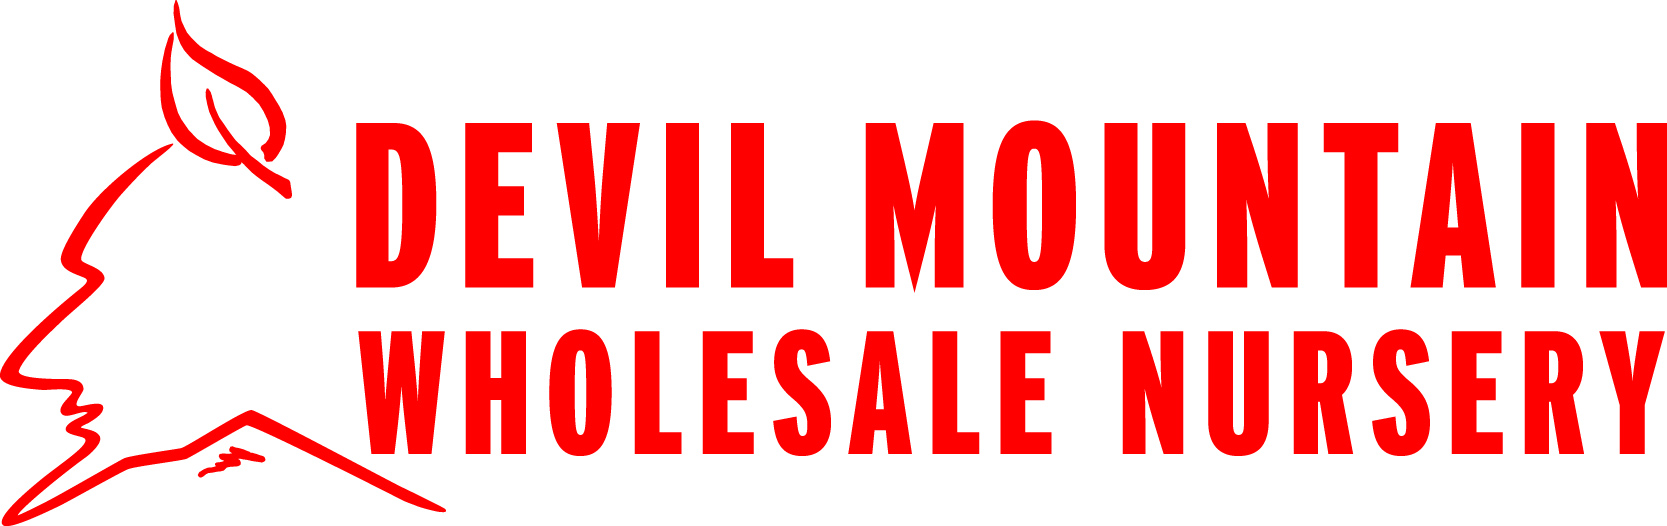 Devil Mountain_Logo_wholesale nursery_09-2017-Red.jpg